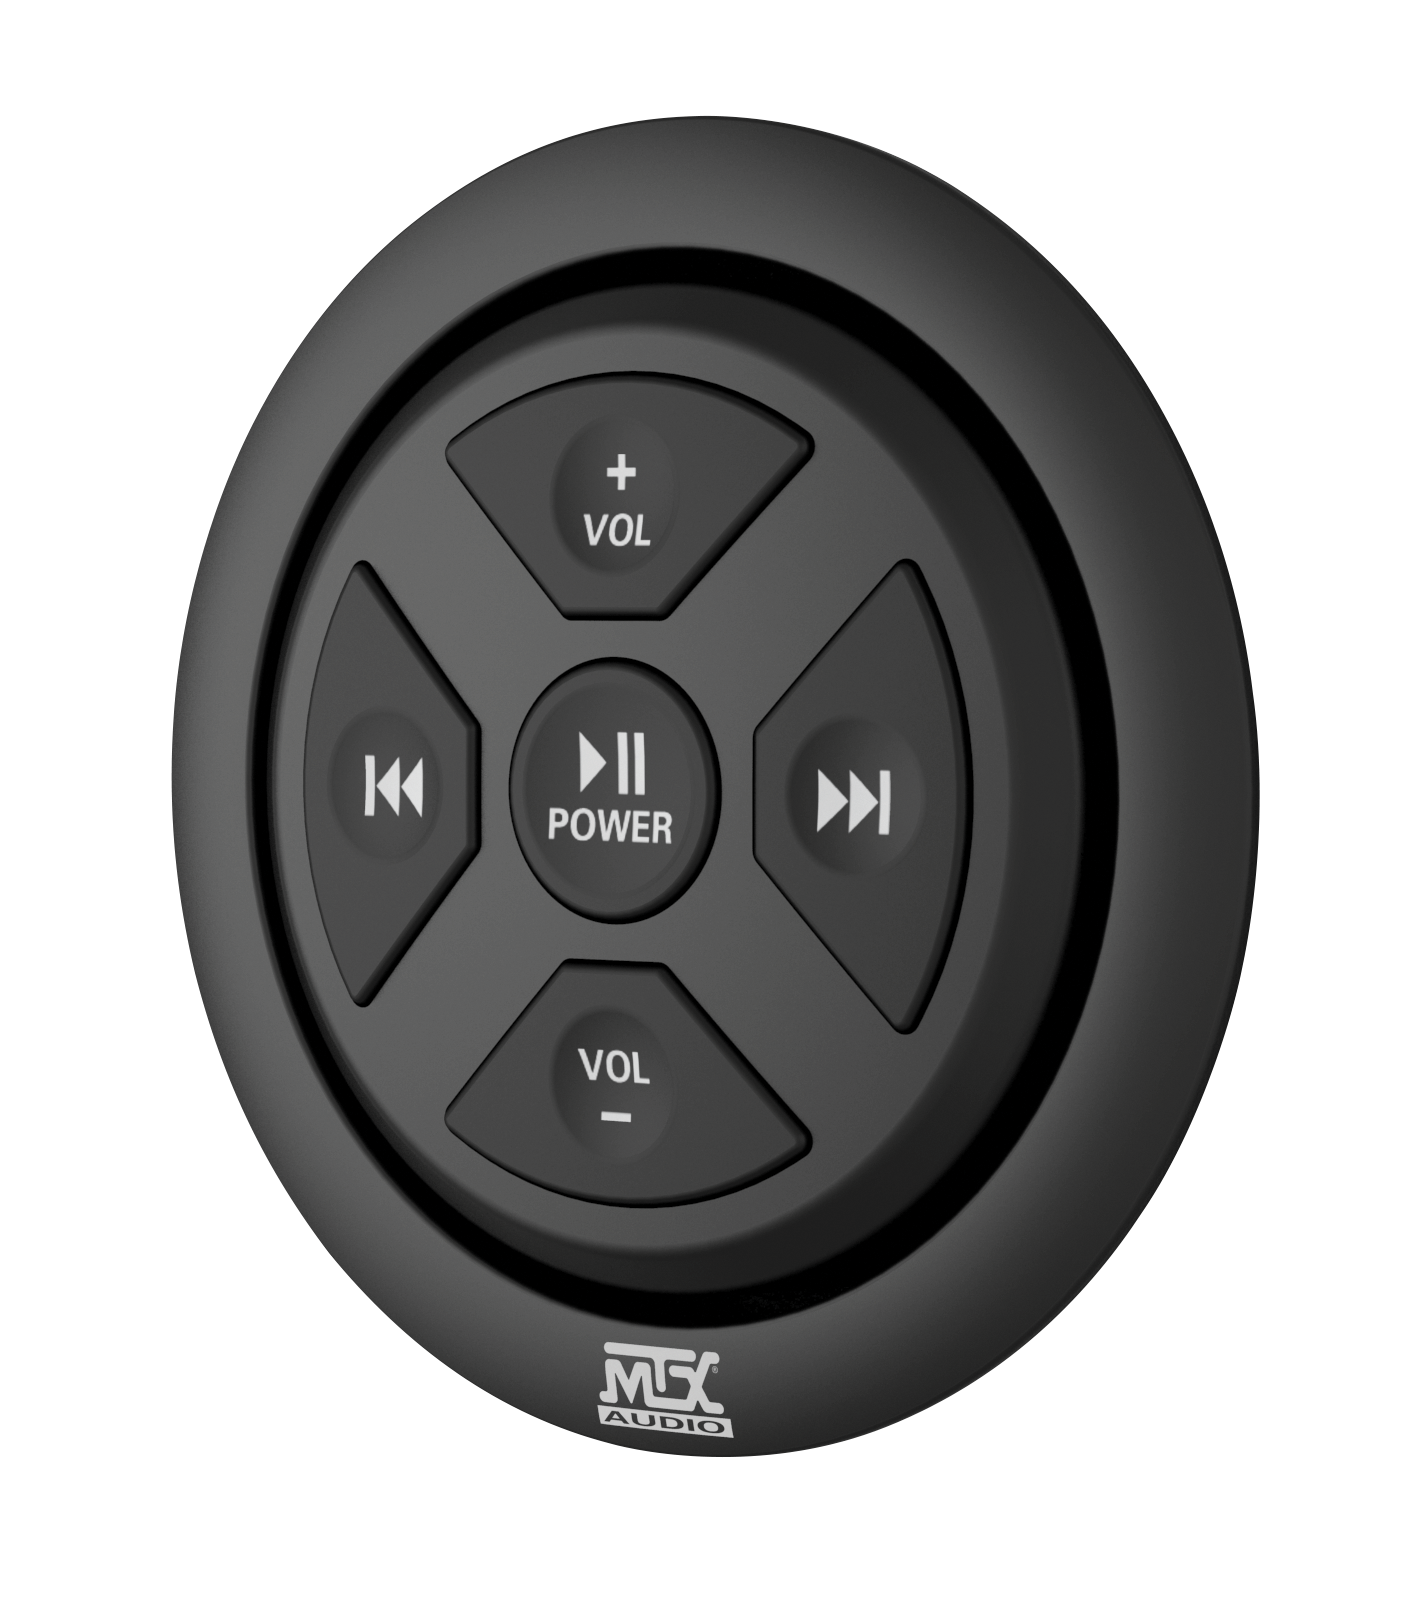 Mudbtrc Universal Bluetooth Receiver And Remote Control